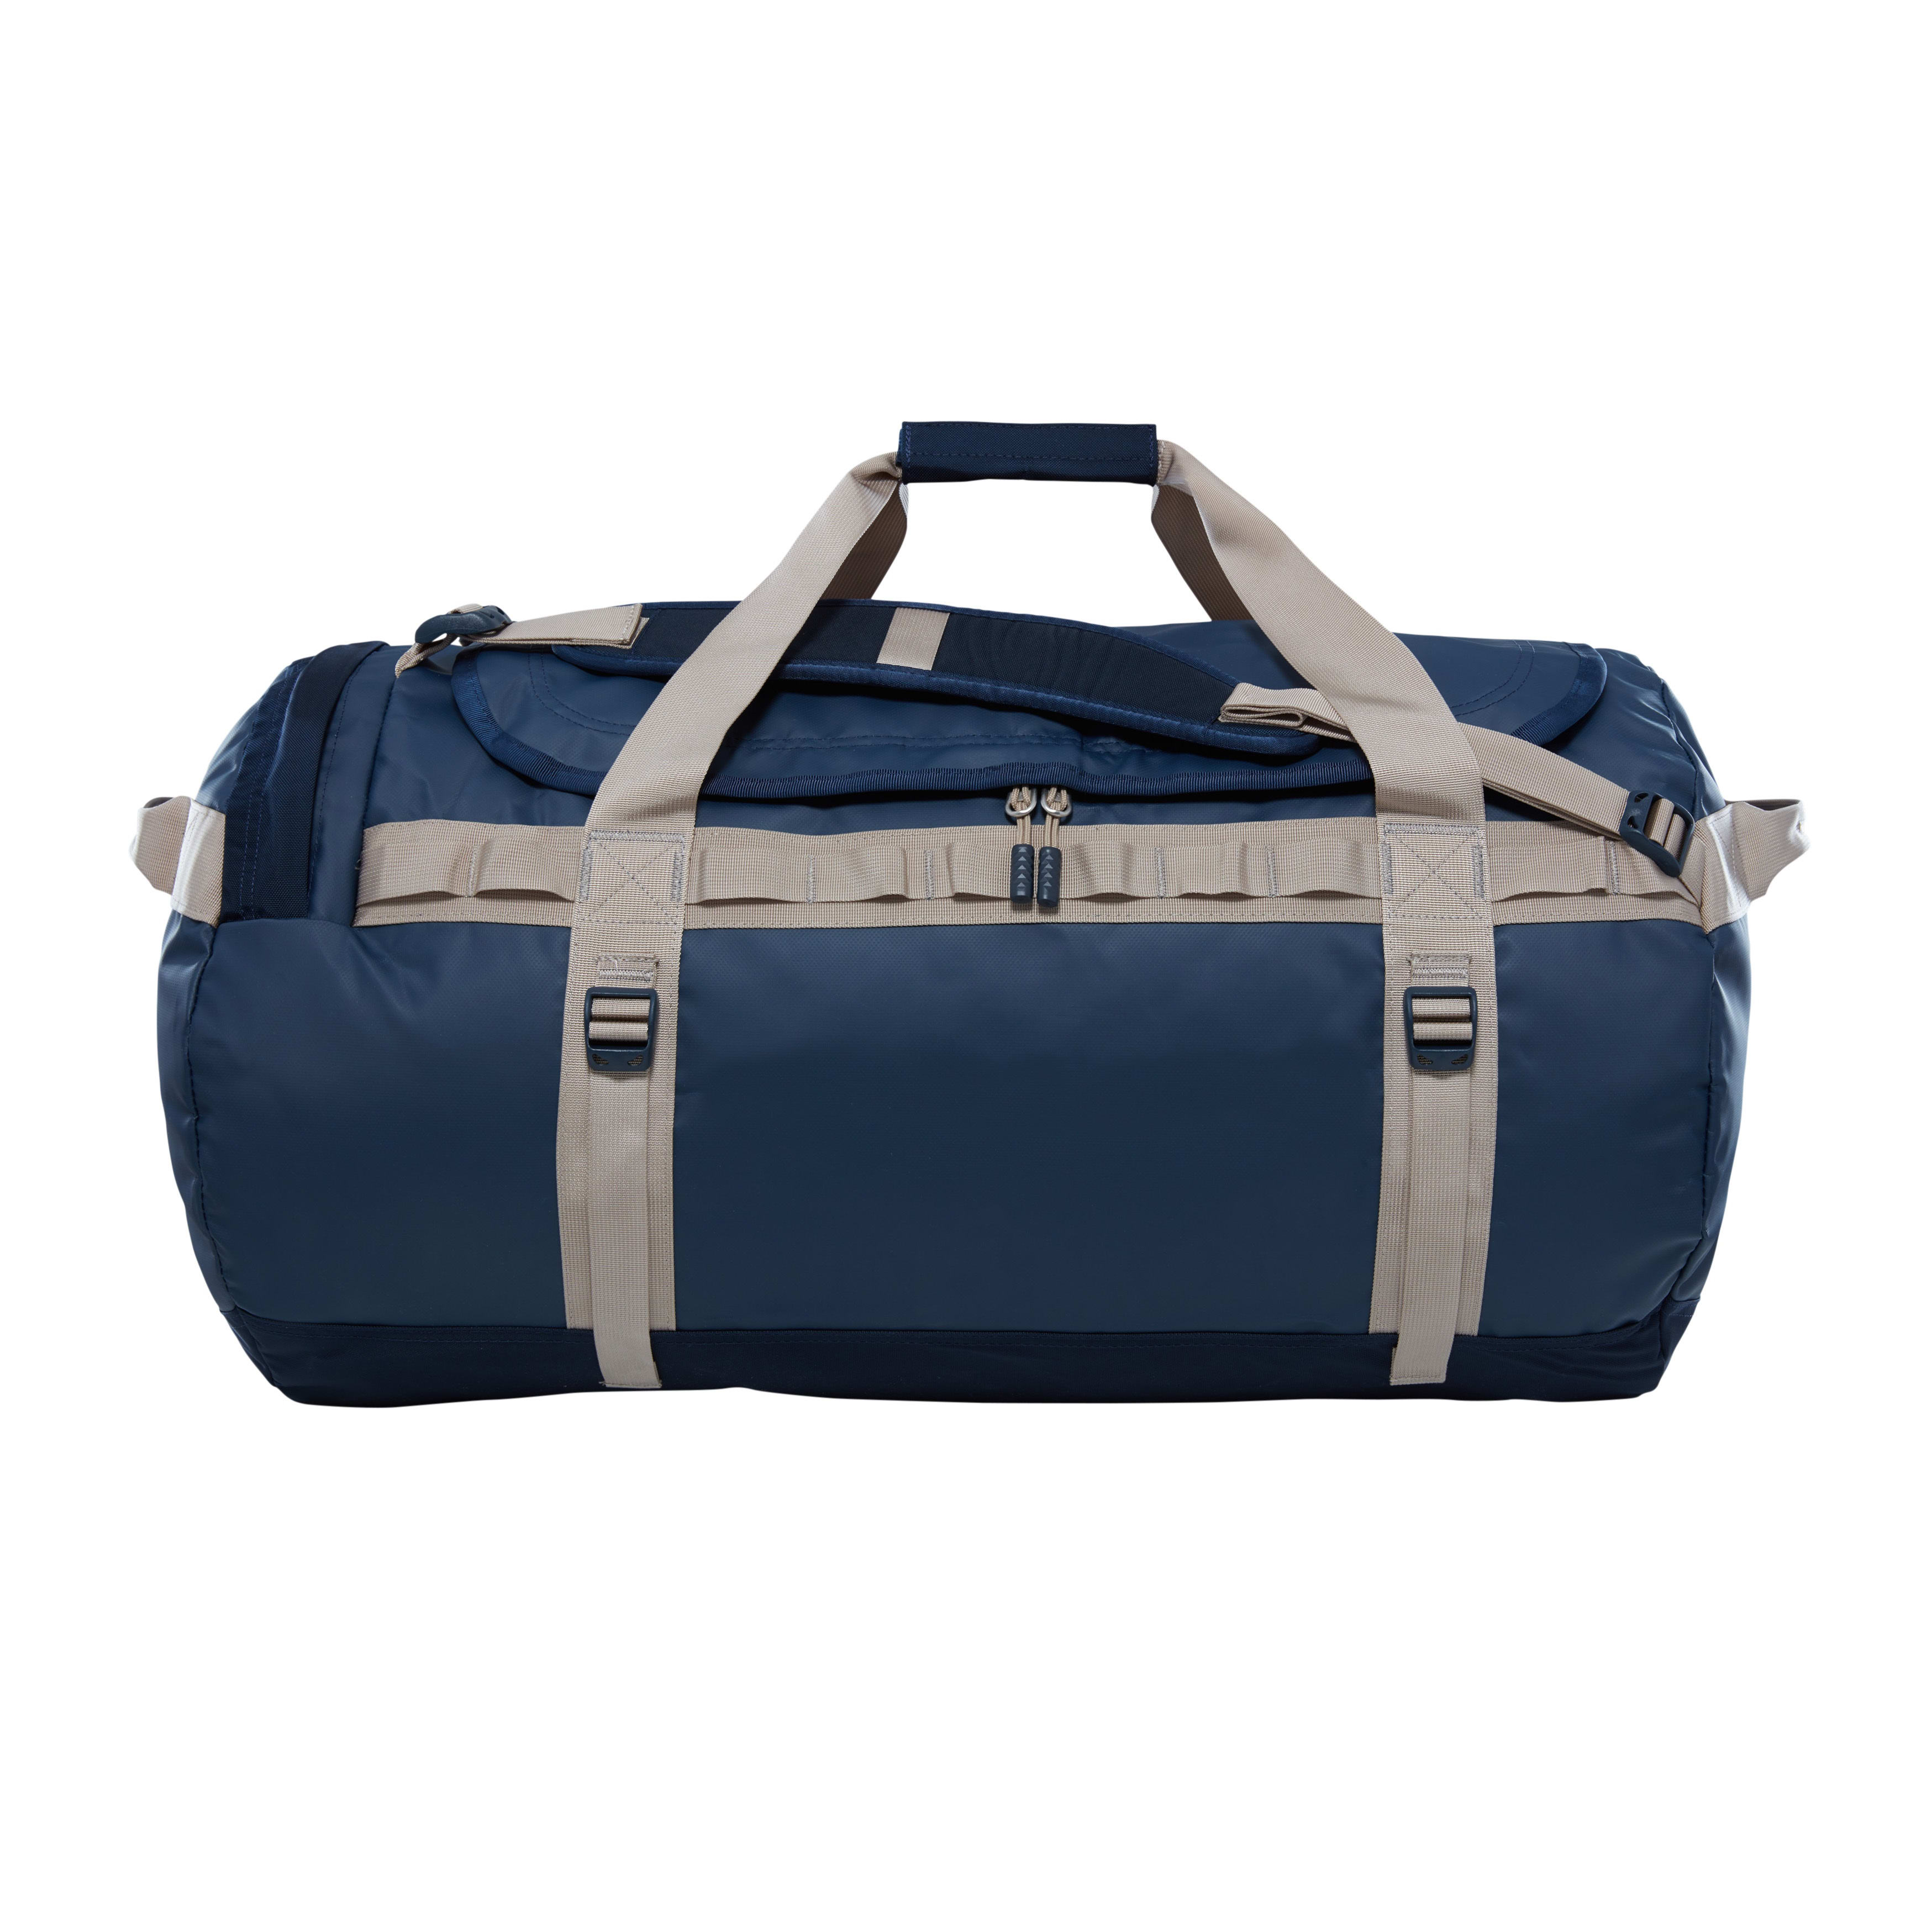 Buy The North Face Base Camp Duffel - L from Outnorth d64091cb41